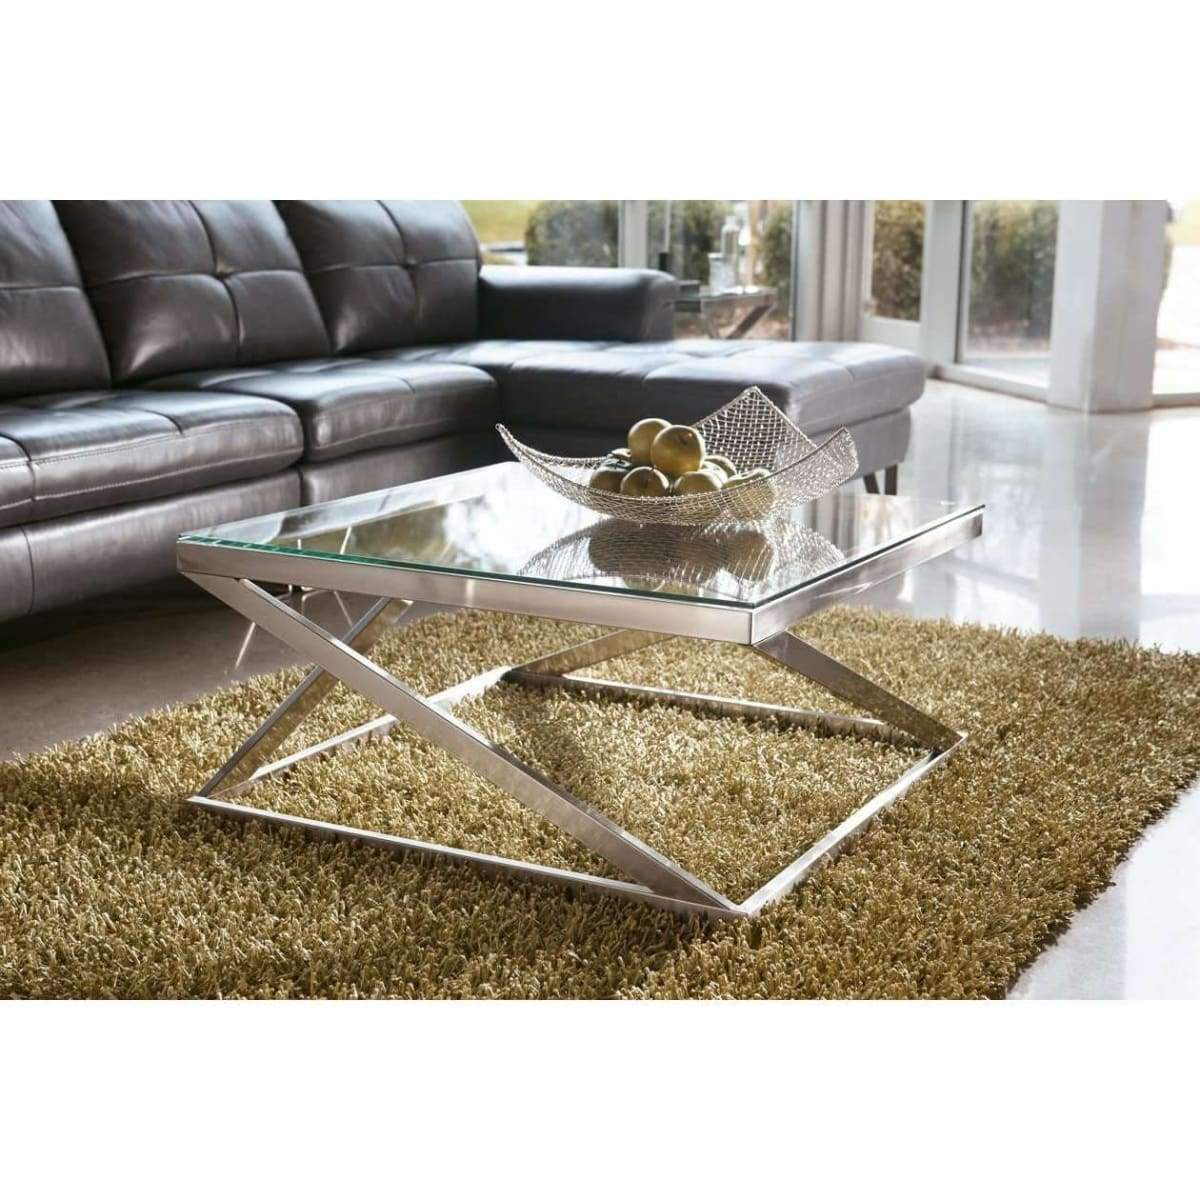 Coylin Coffee Table - COFFEE TABLE